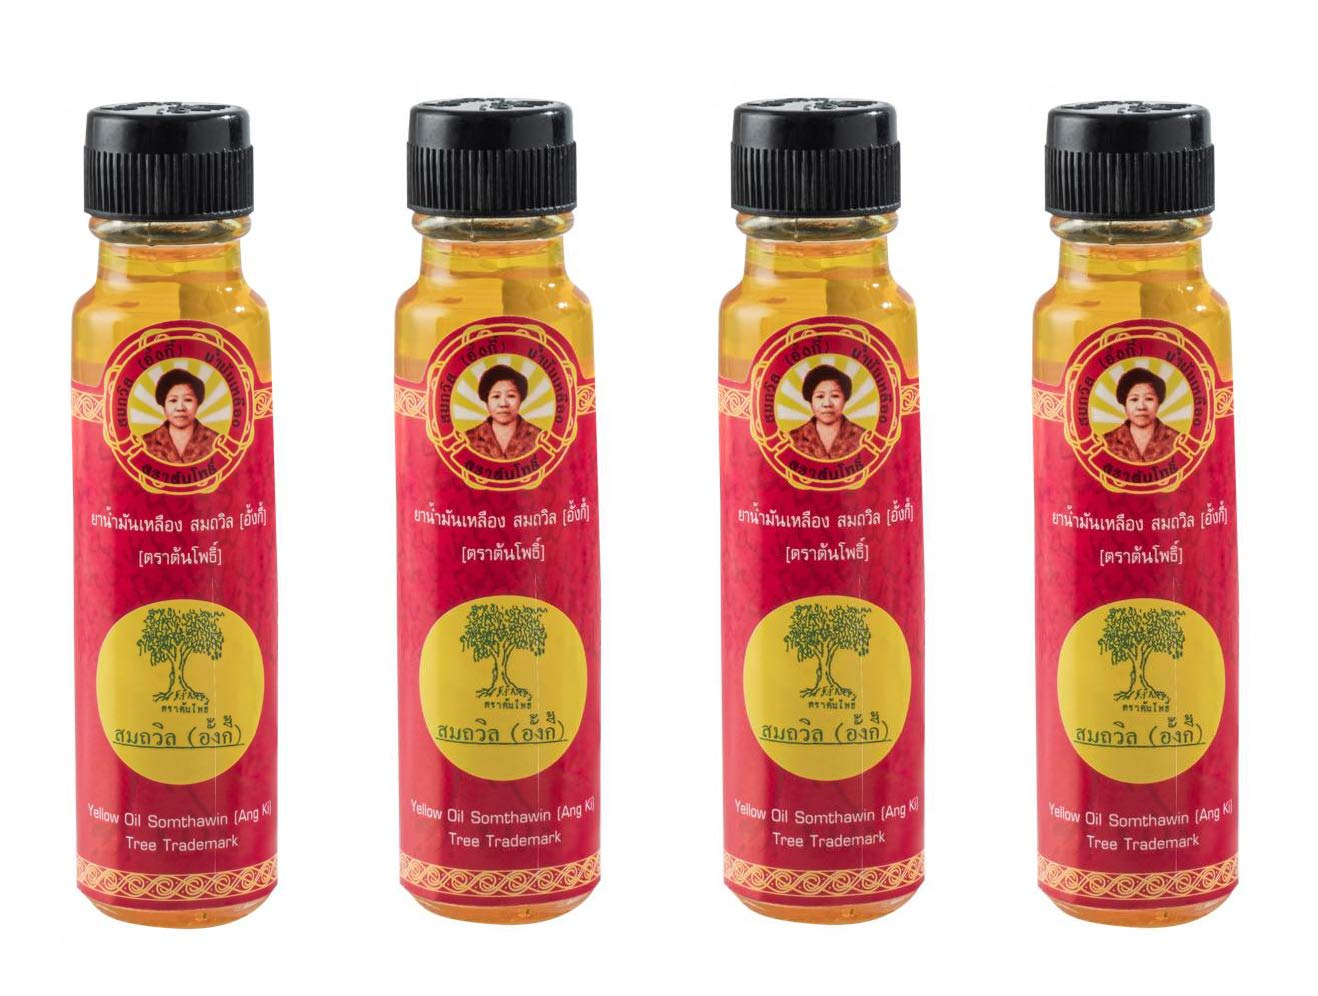 4x Angki Somthawin Hotel Spa Natural Thai Aroma Herb Yellow Oil 24cc Wholesale Price Made of Thailand